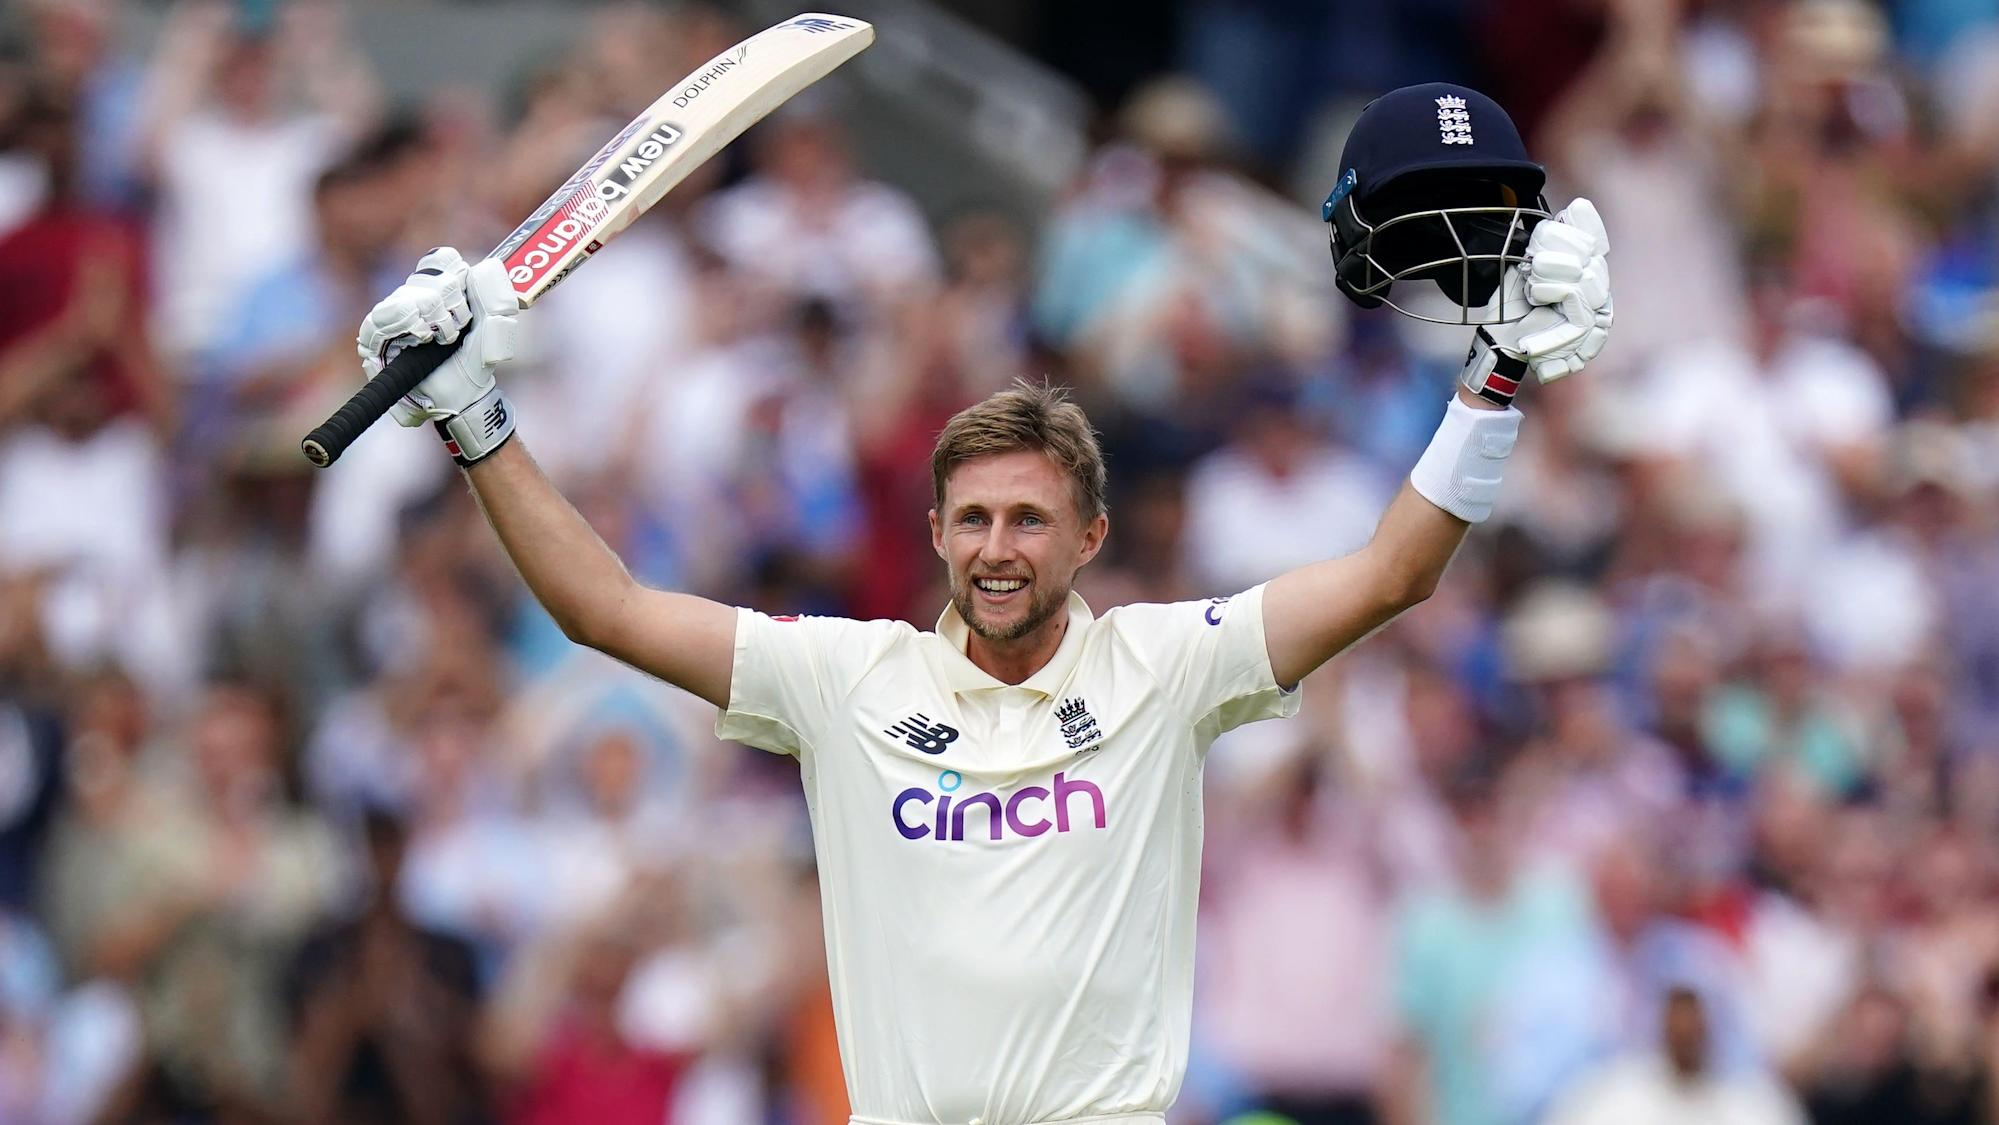 England captain Joe Root up two places to second in ICC Test batting  rankings